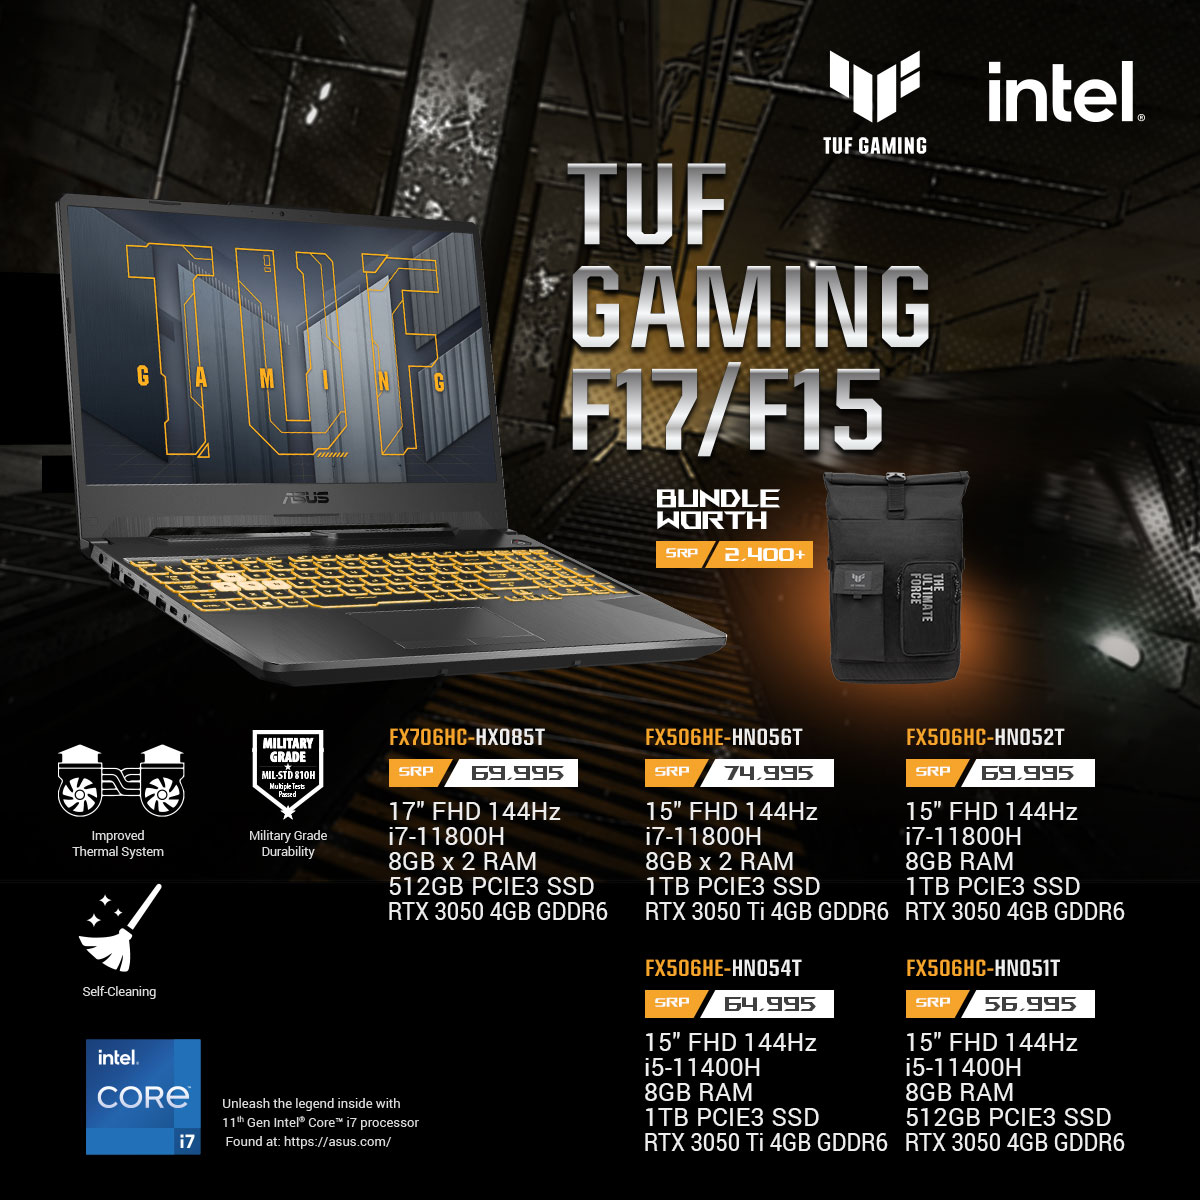 TUF Gaming F17/15 Key Features and Price